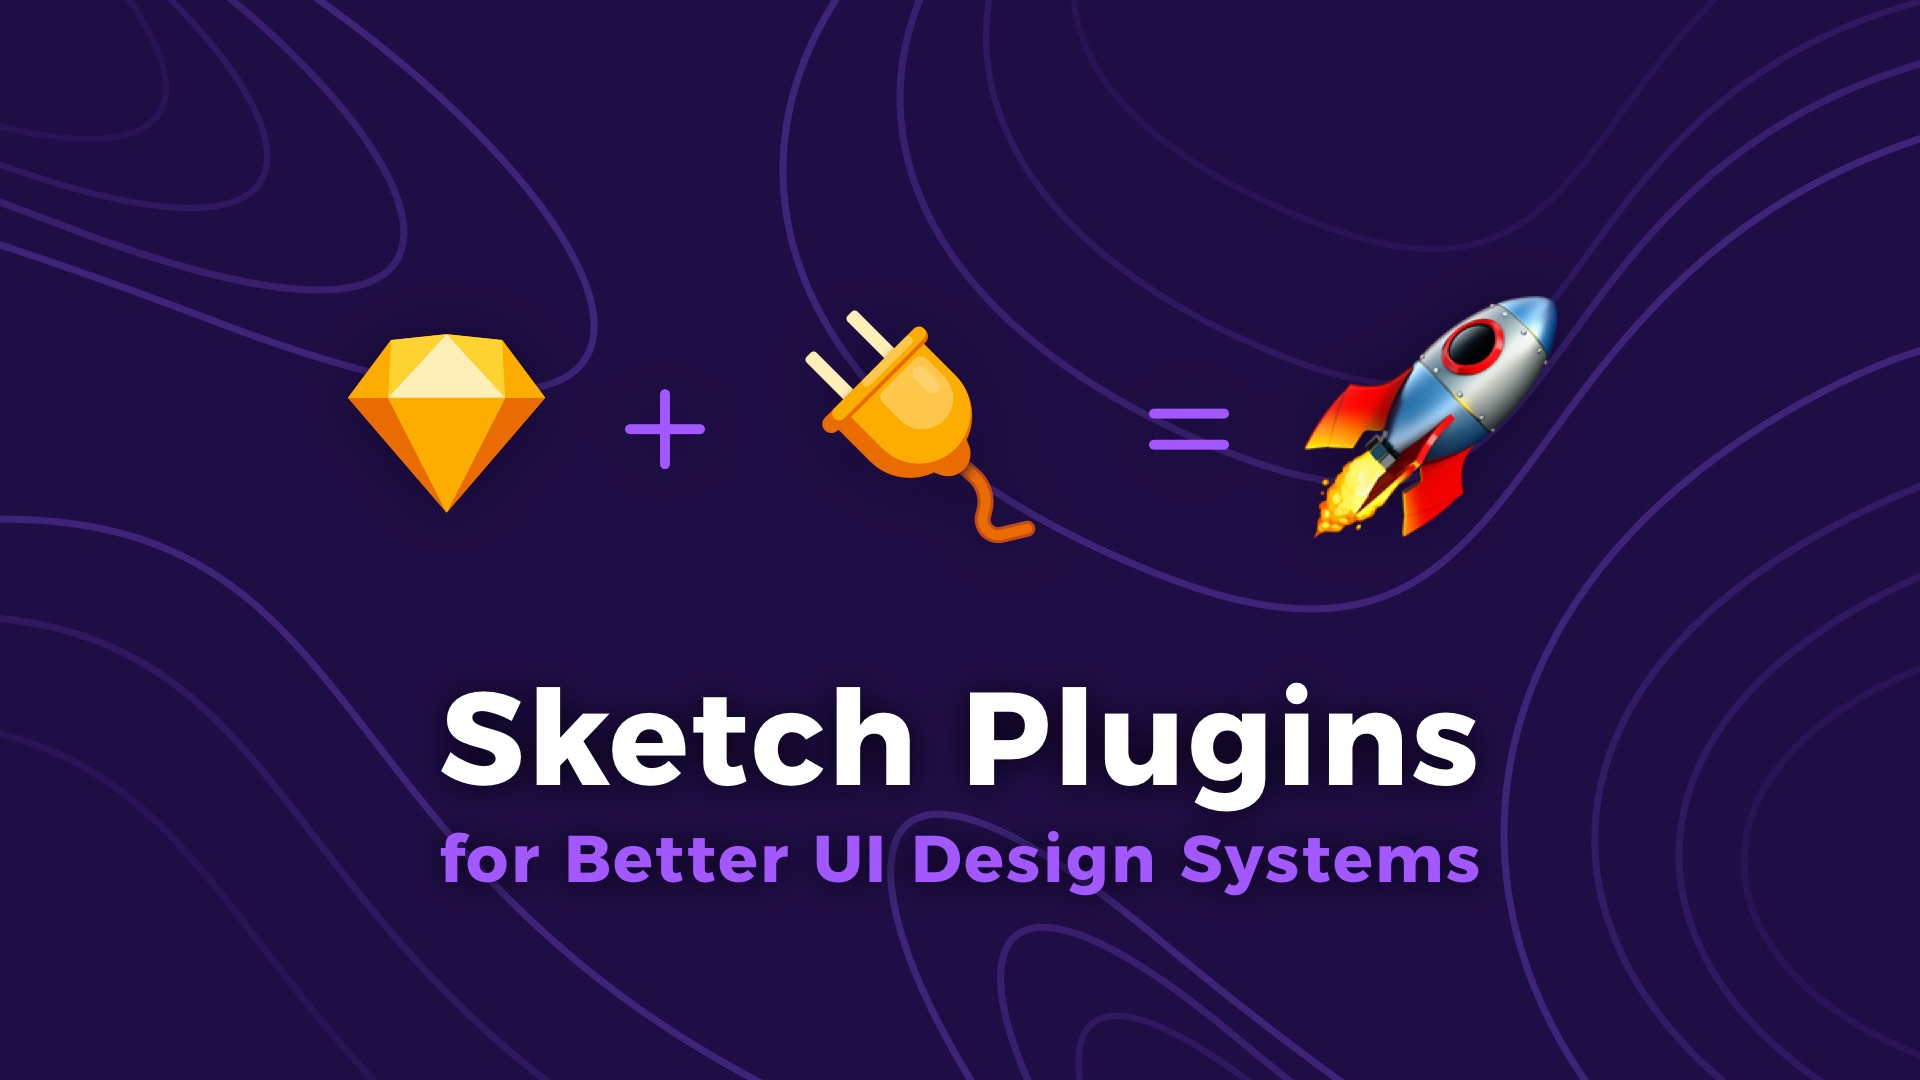 Use this Sketch Plugins to manage Design System UI Library